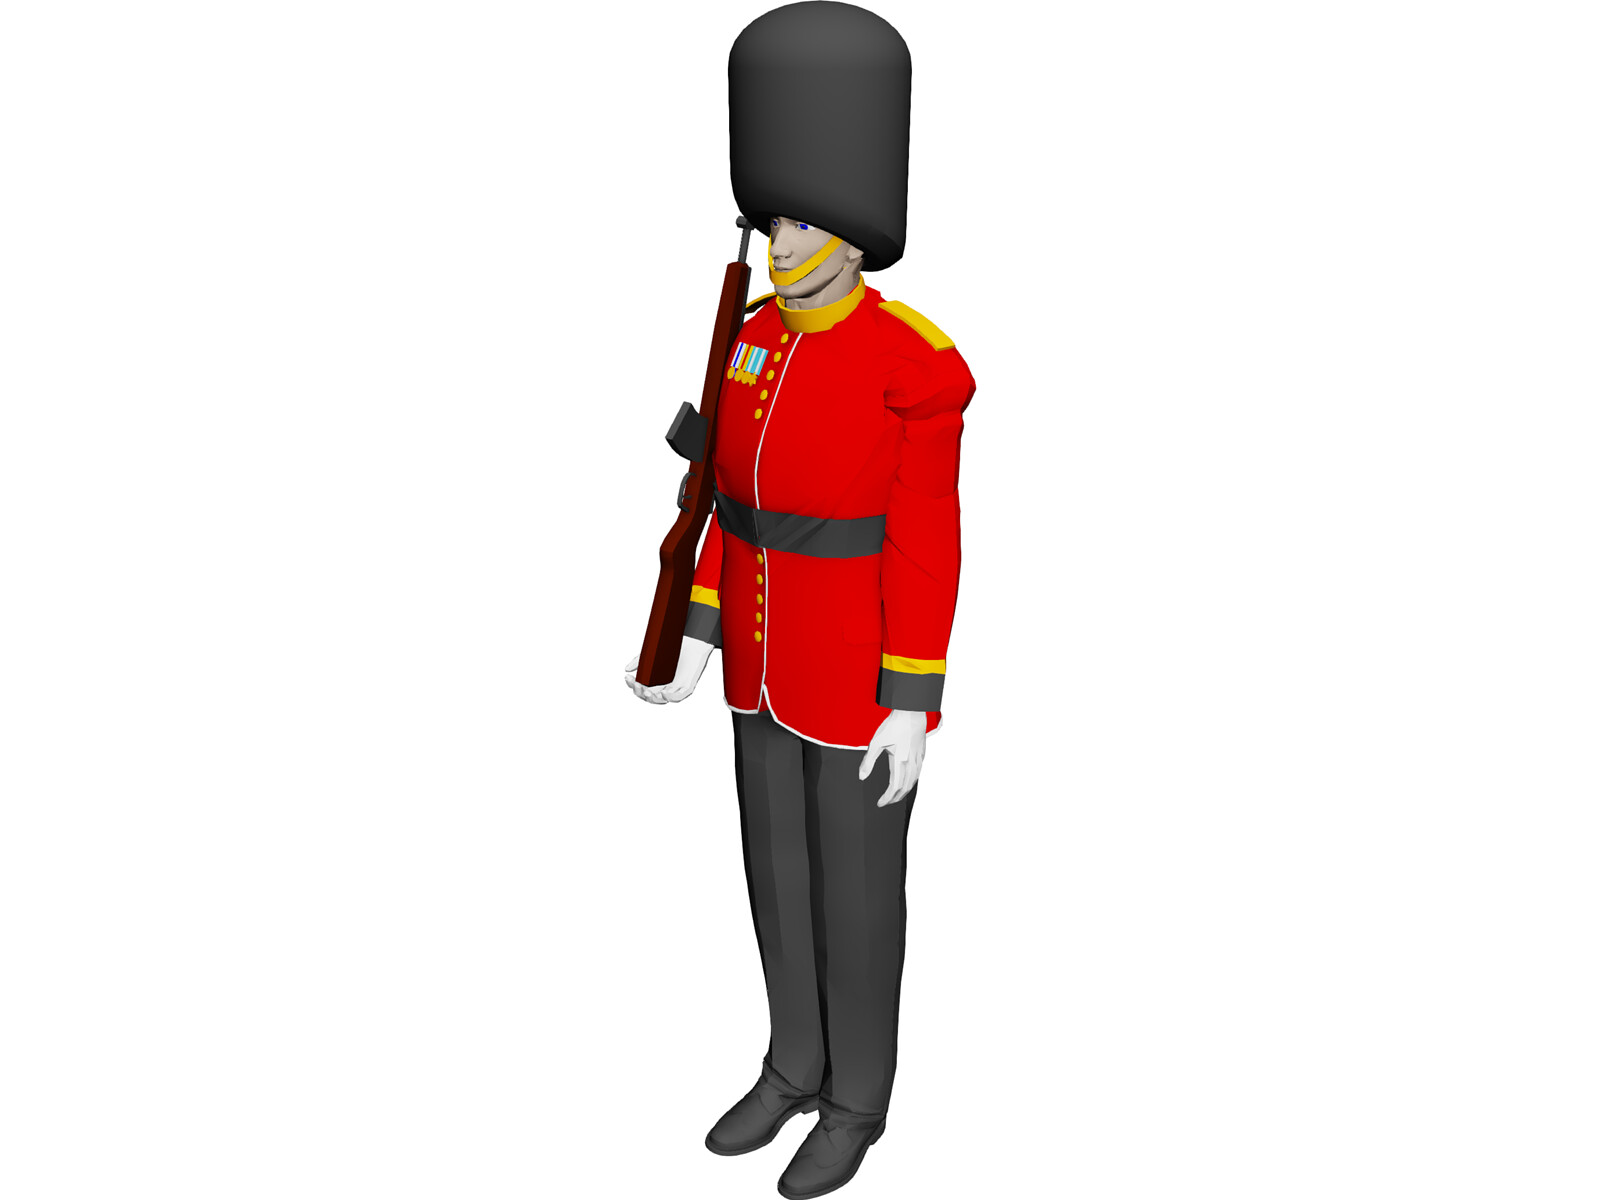 Buckingham Palace Guard 3D Model